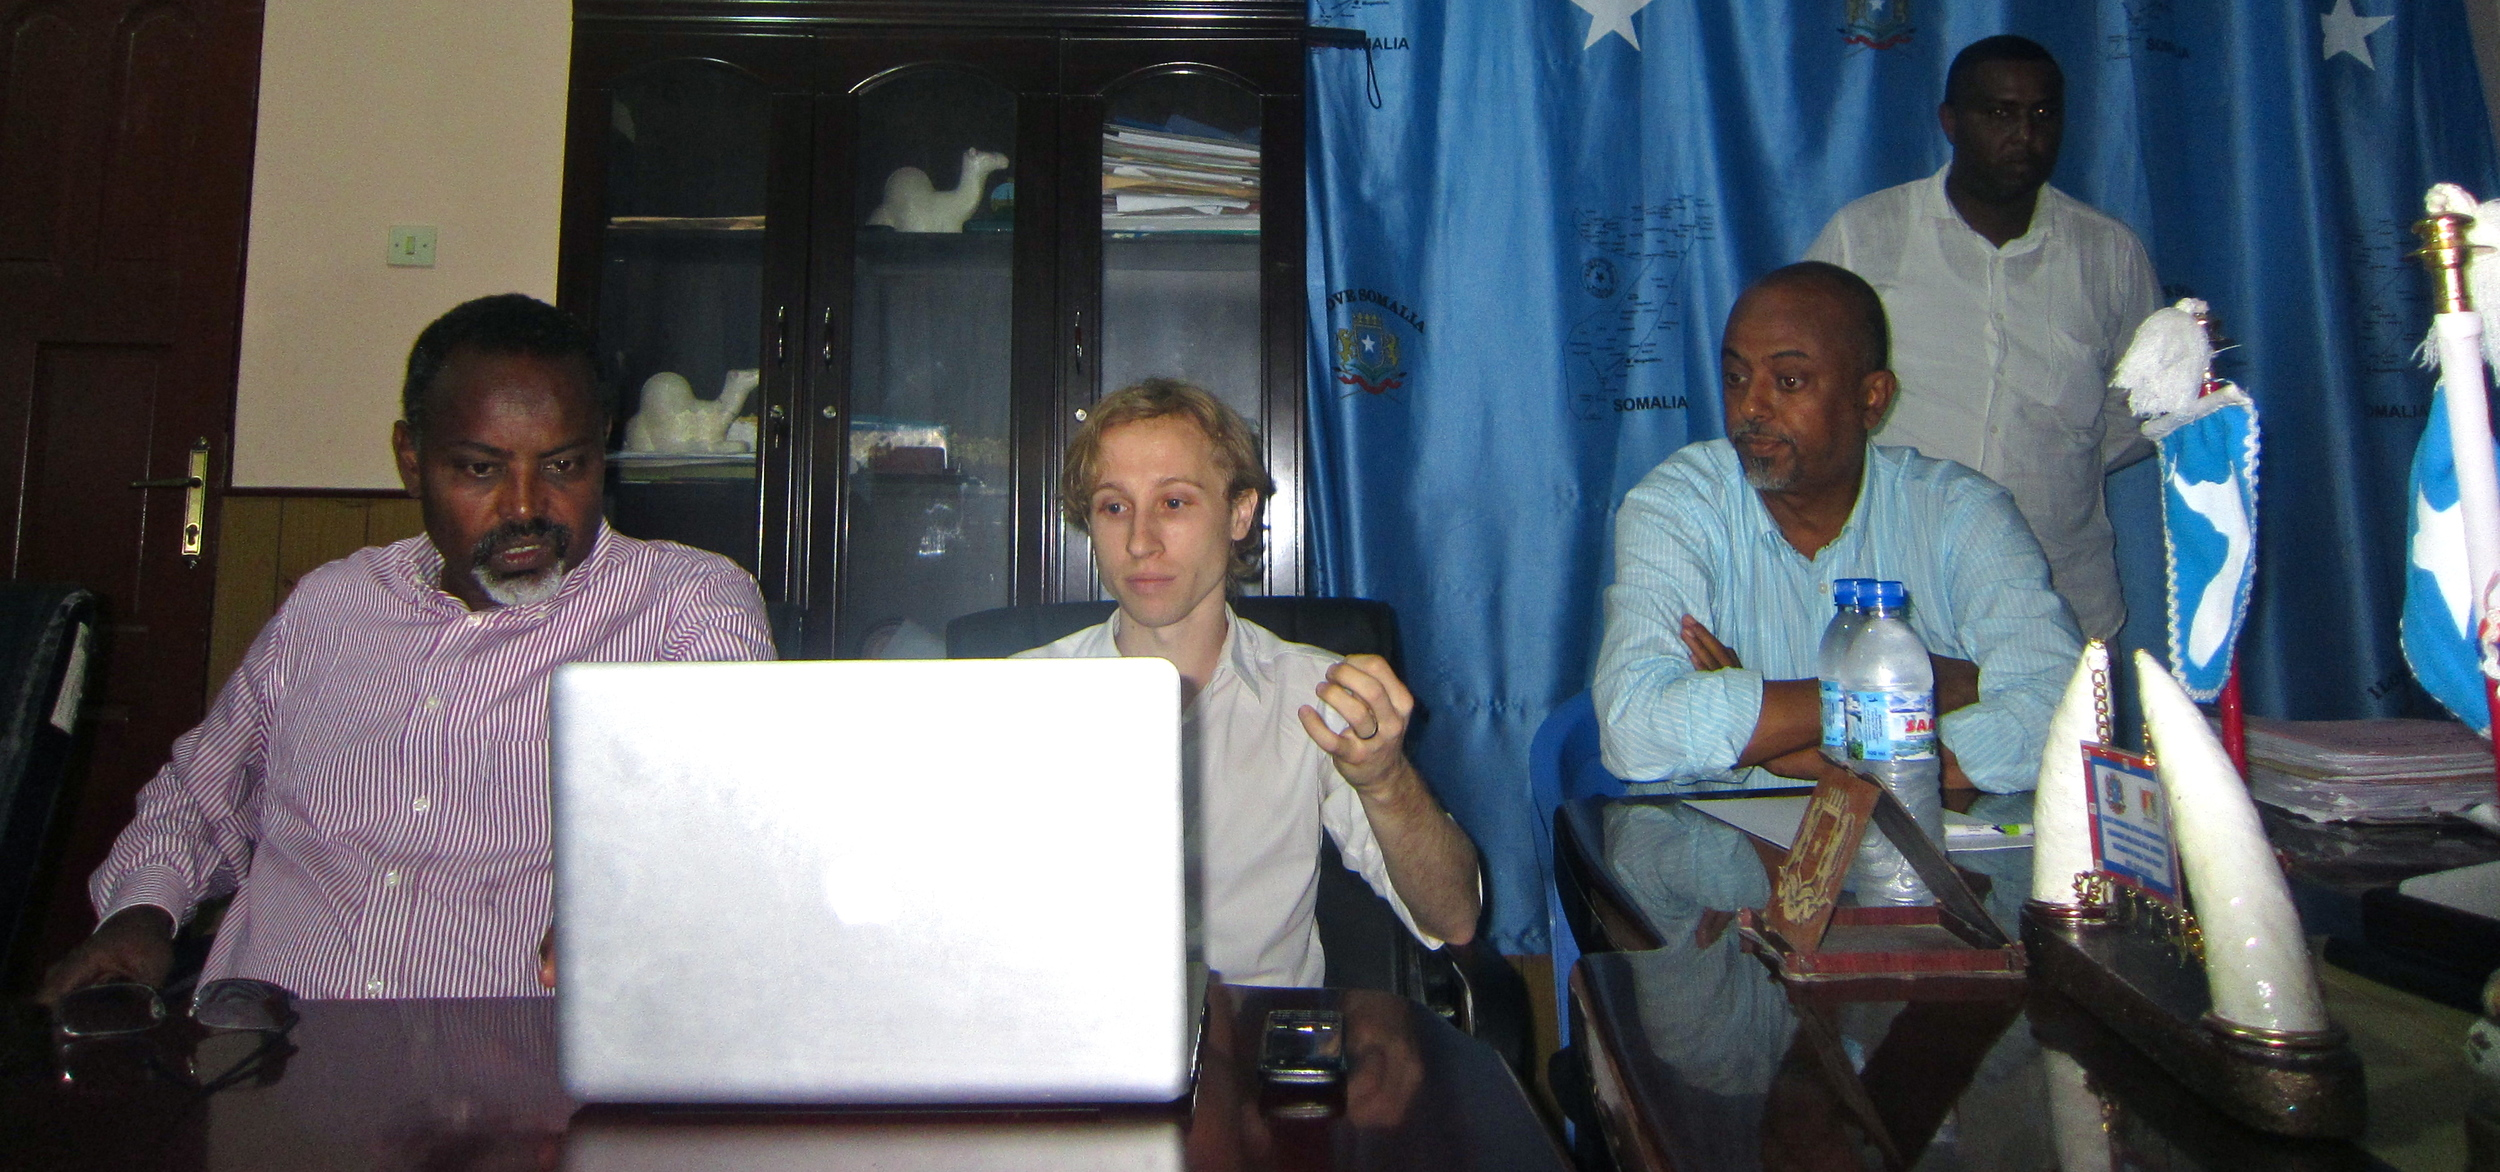 Introducing the Mayor of Mogadishu, Mohammud Nur, to Data Driven Reconstruction Methods